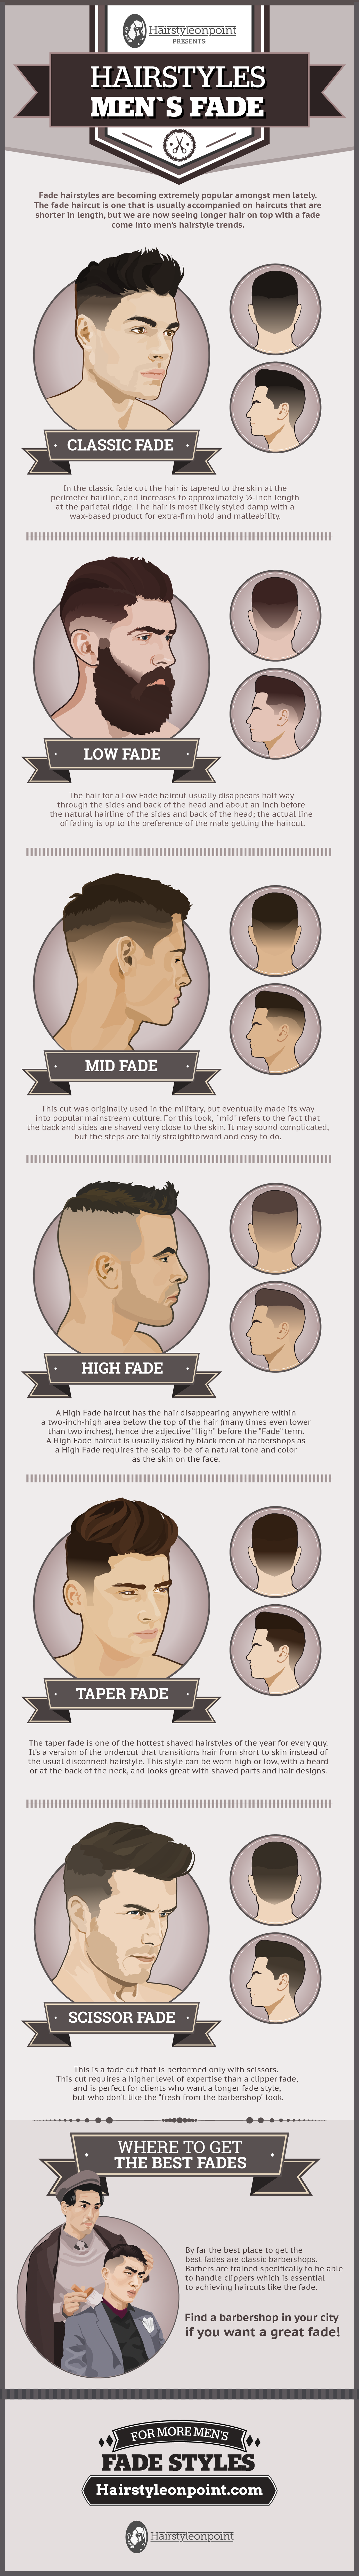 Hairstyles A Simple Guide To Popular And Modern Fades - Good places to get hair cut